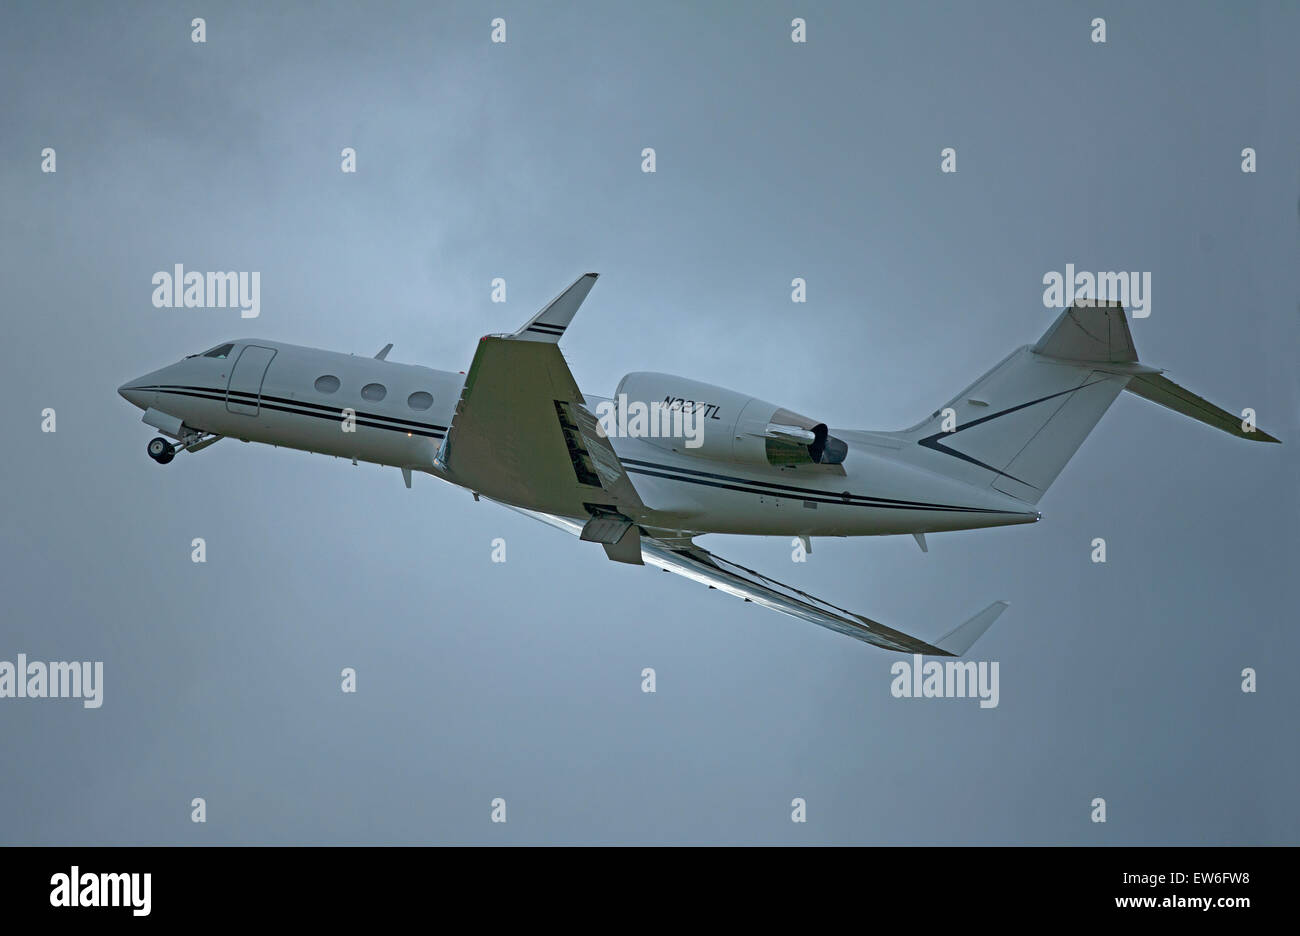 Gulfstream Aerospace G-IV Gulfstream IV-SP (N327TL) leaving Inverness airport, Scotland.  SCO 9896. - Stock Image